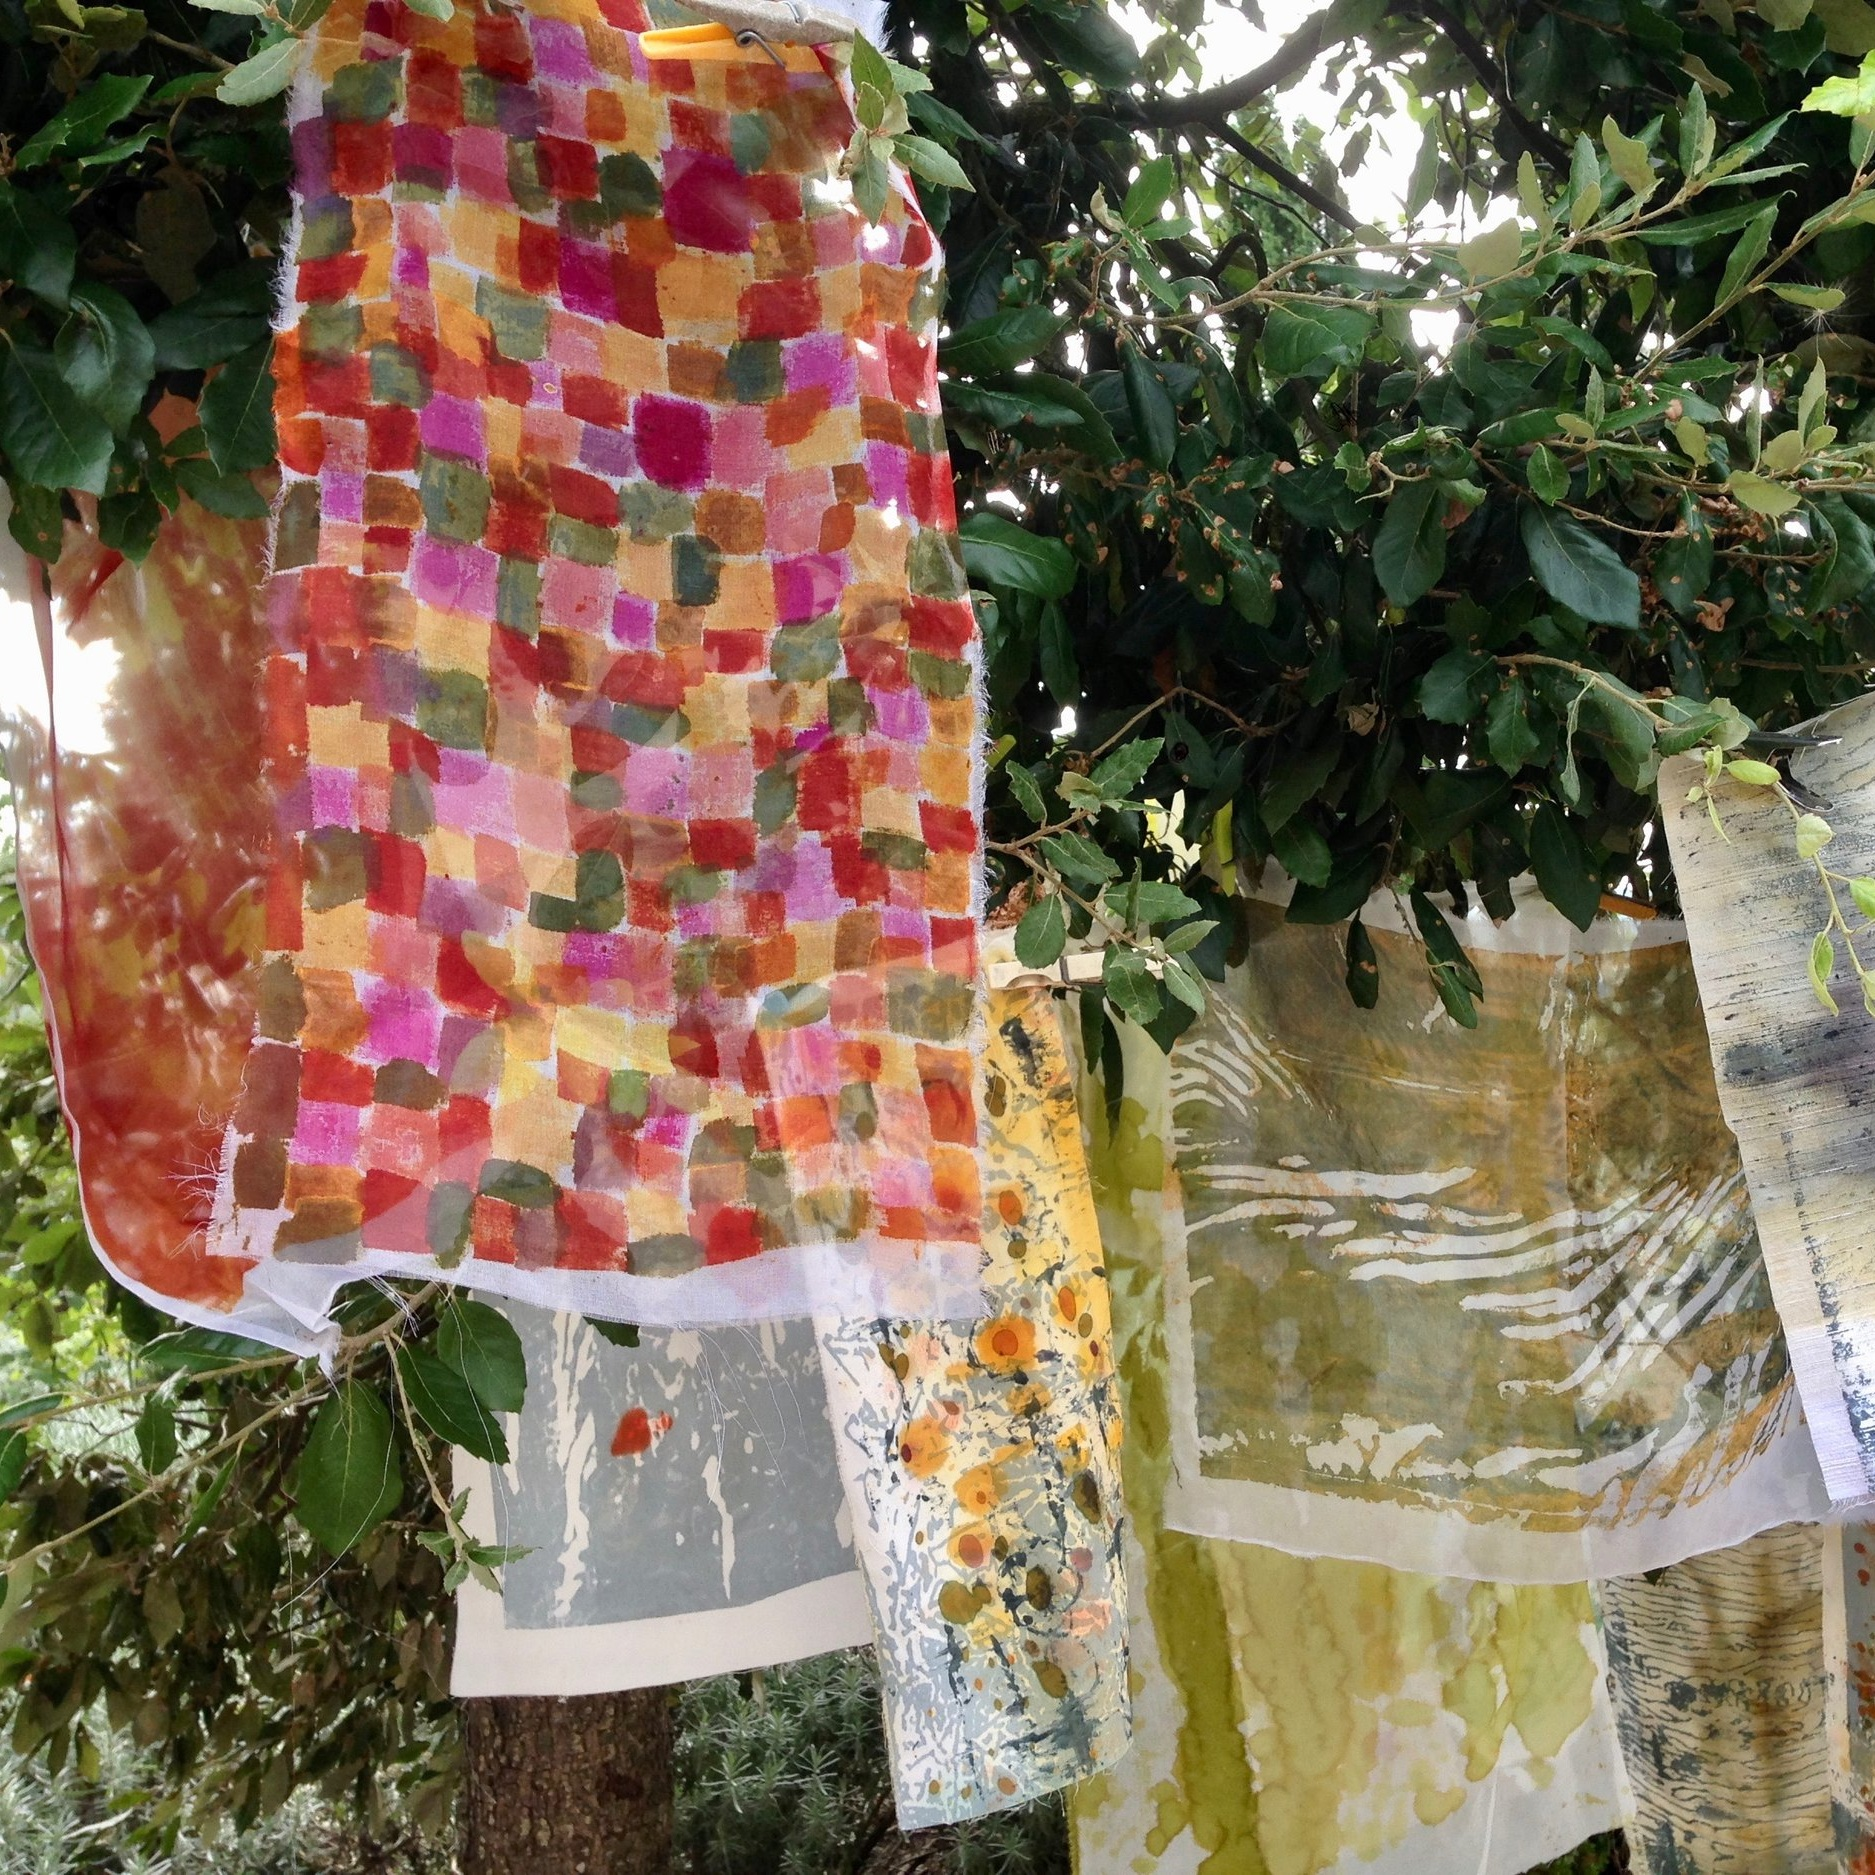 Colour into Cloth - with Carole WallerSeptember 2017